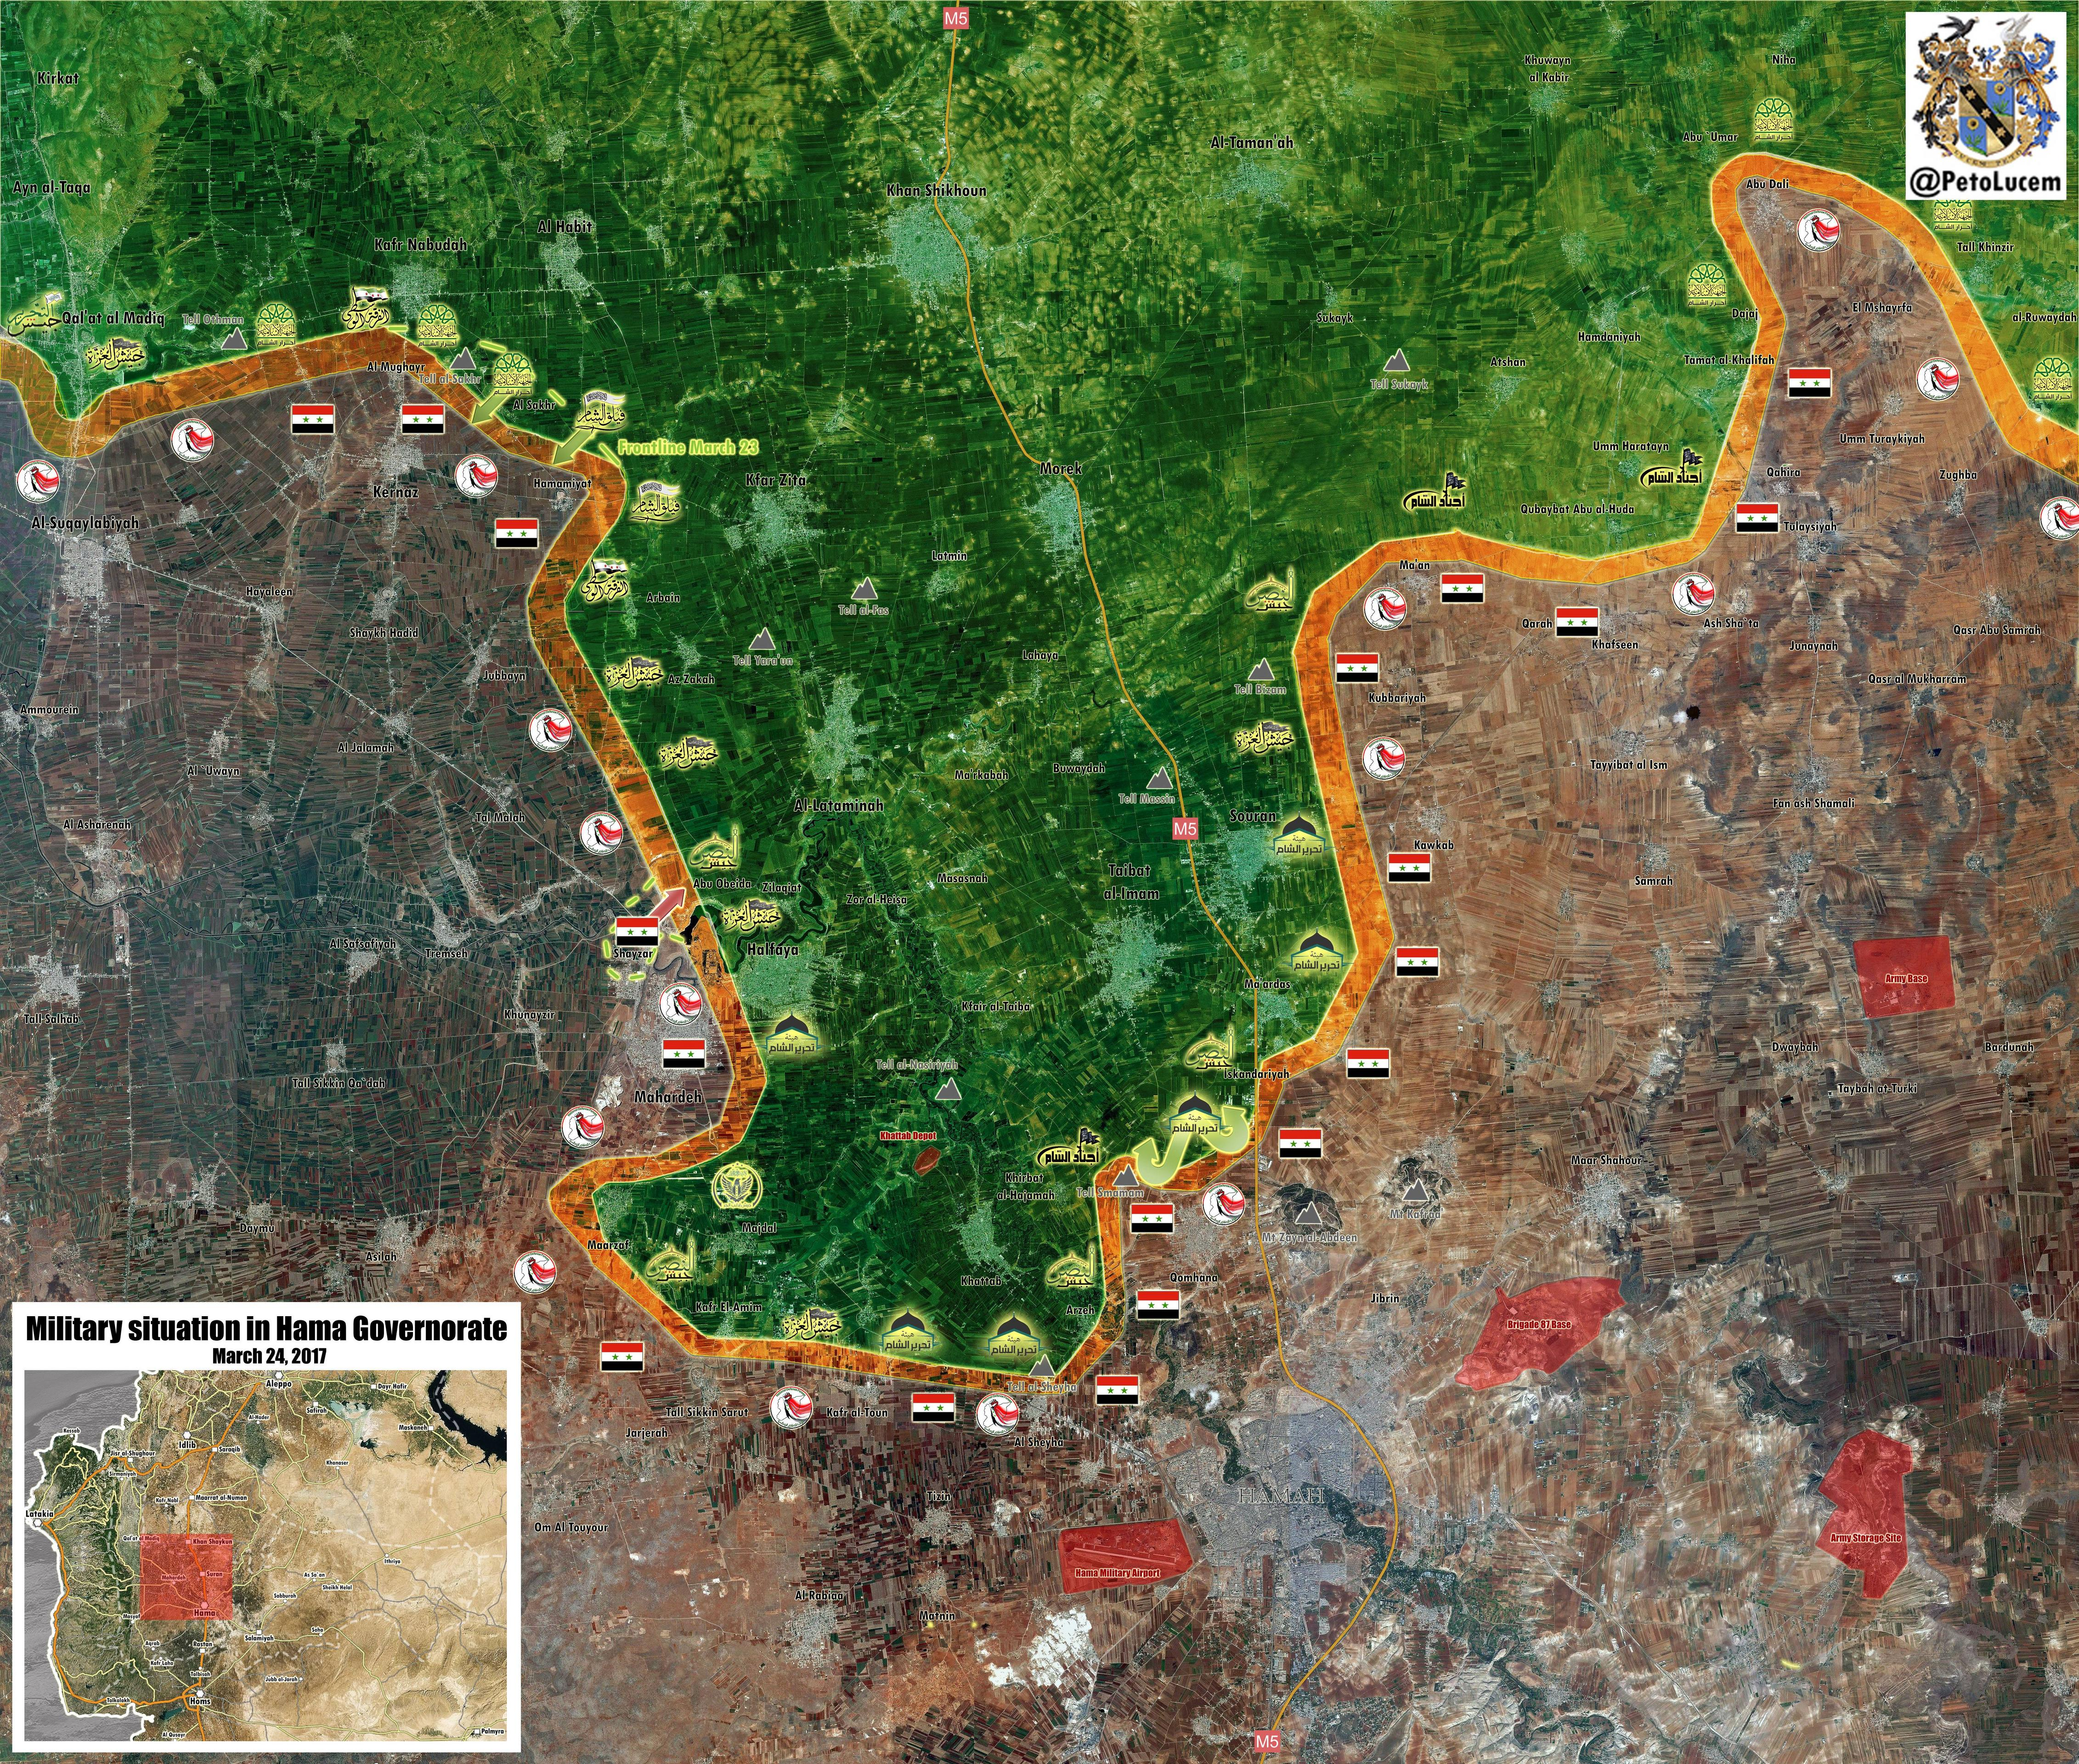 Syrian Army Repelled Large-Scale Militant Advance In Northern Hama